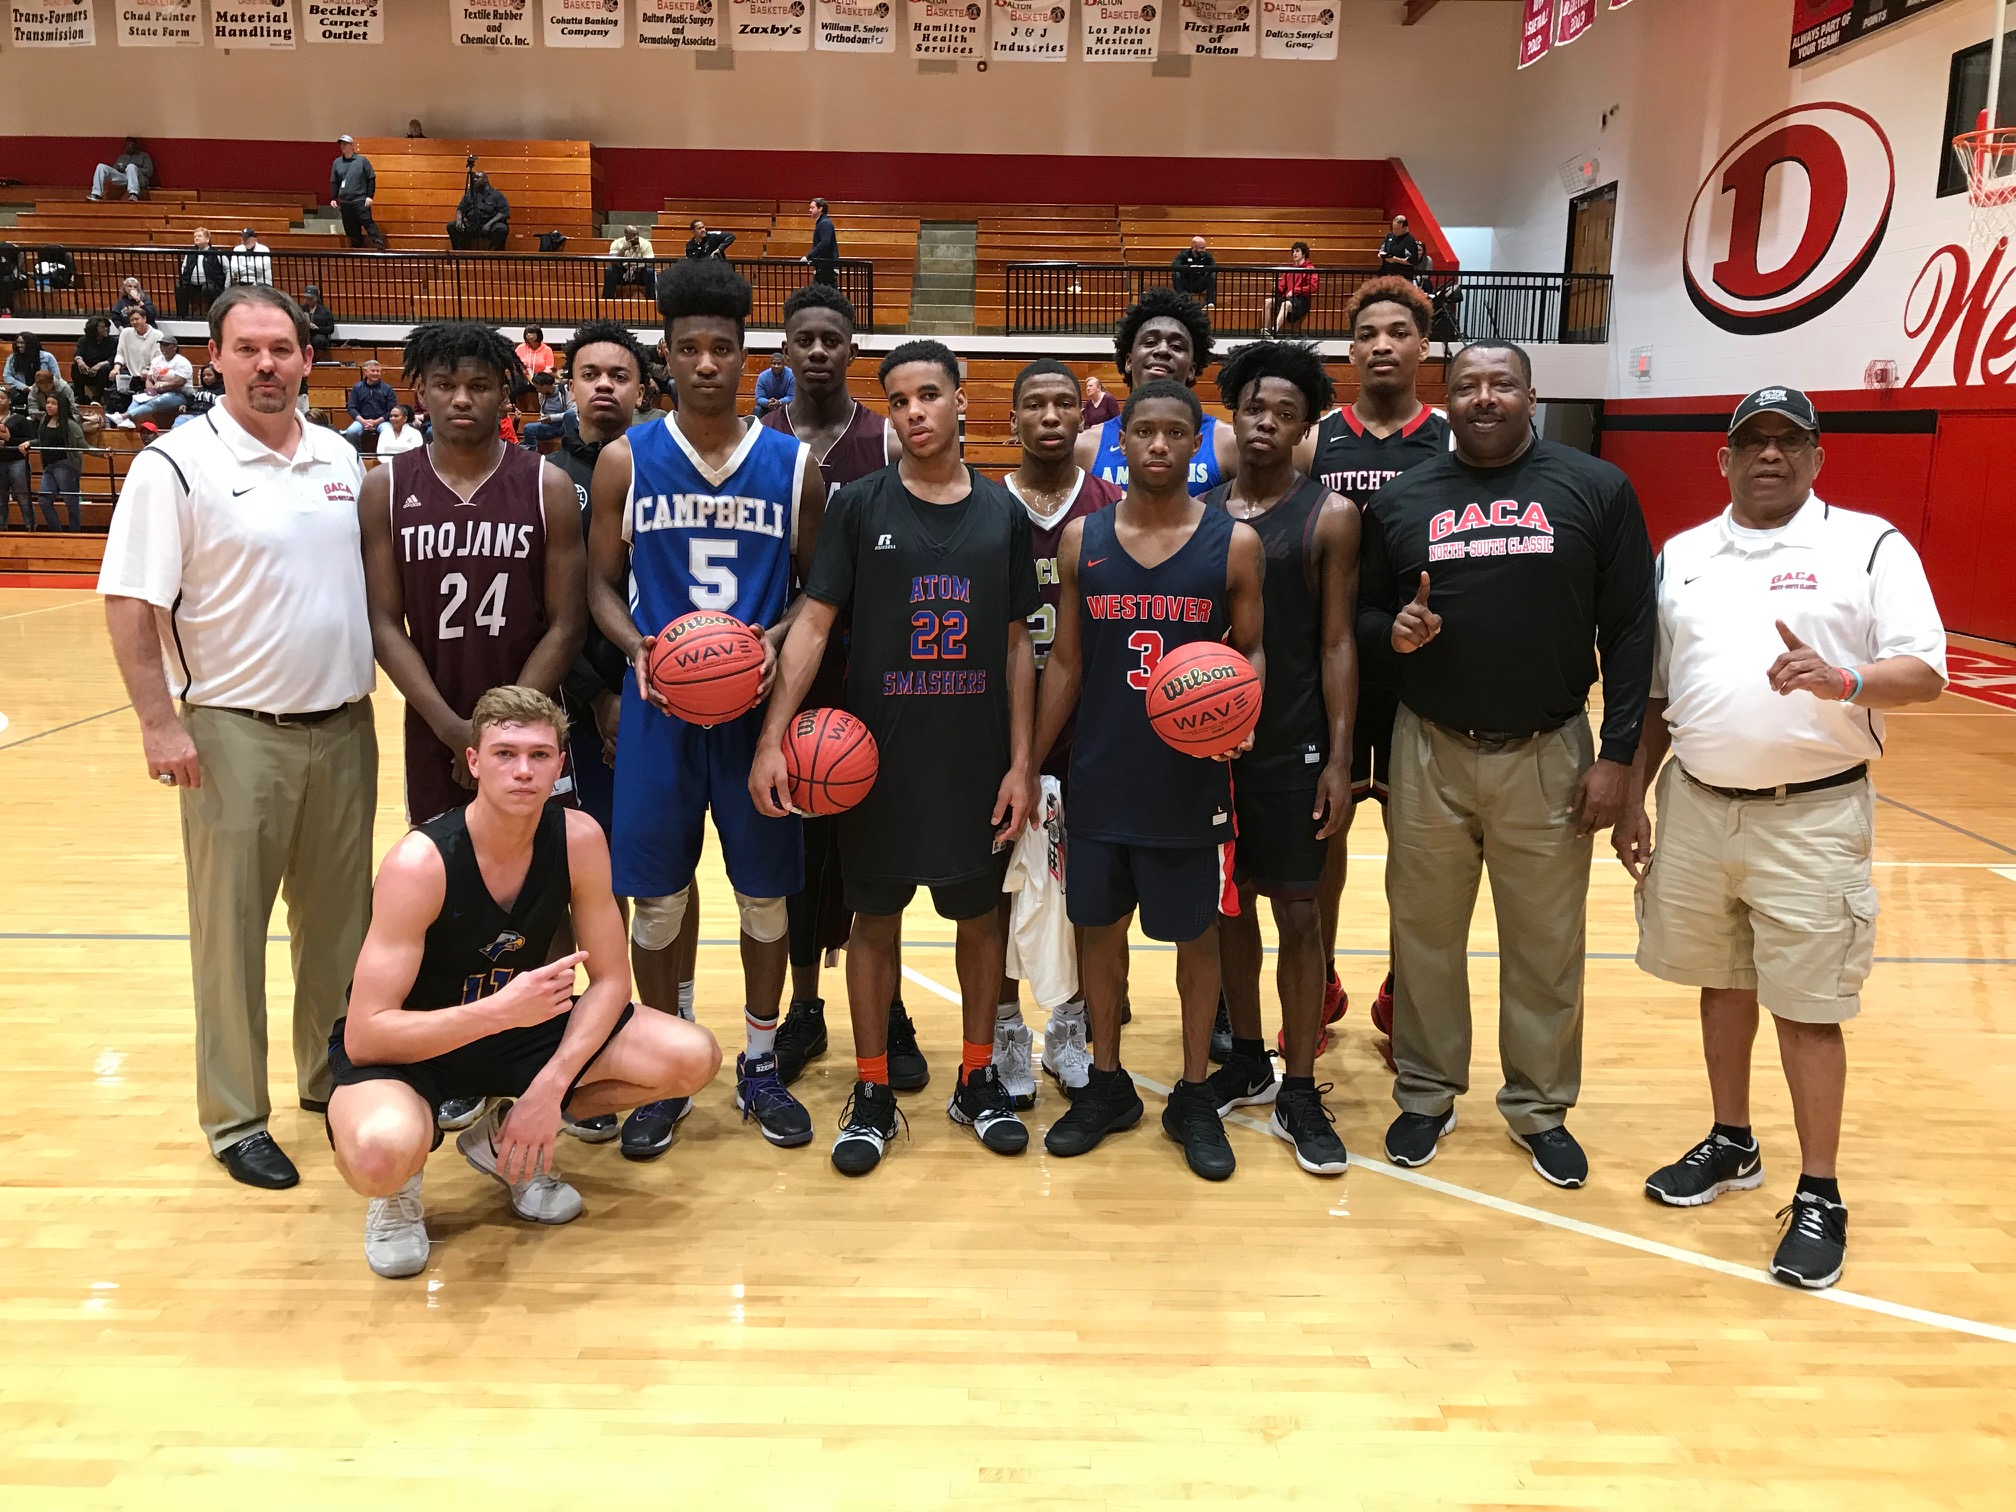 2018 GACA Junior Boys South All-Star Team